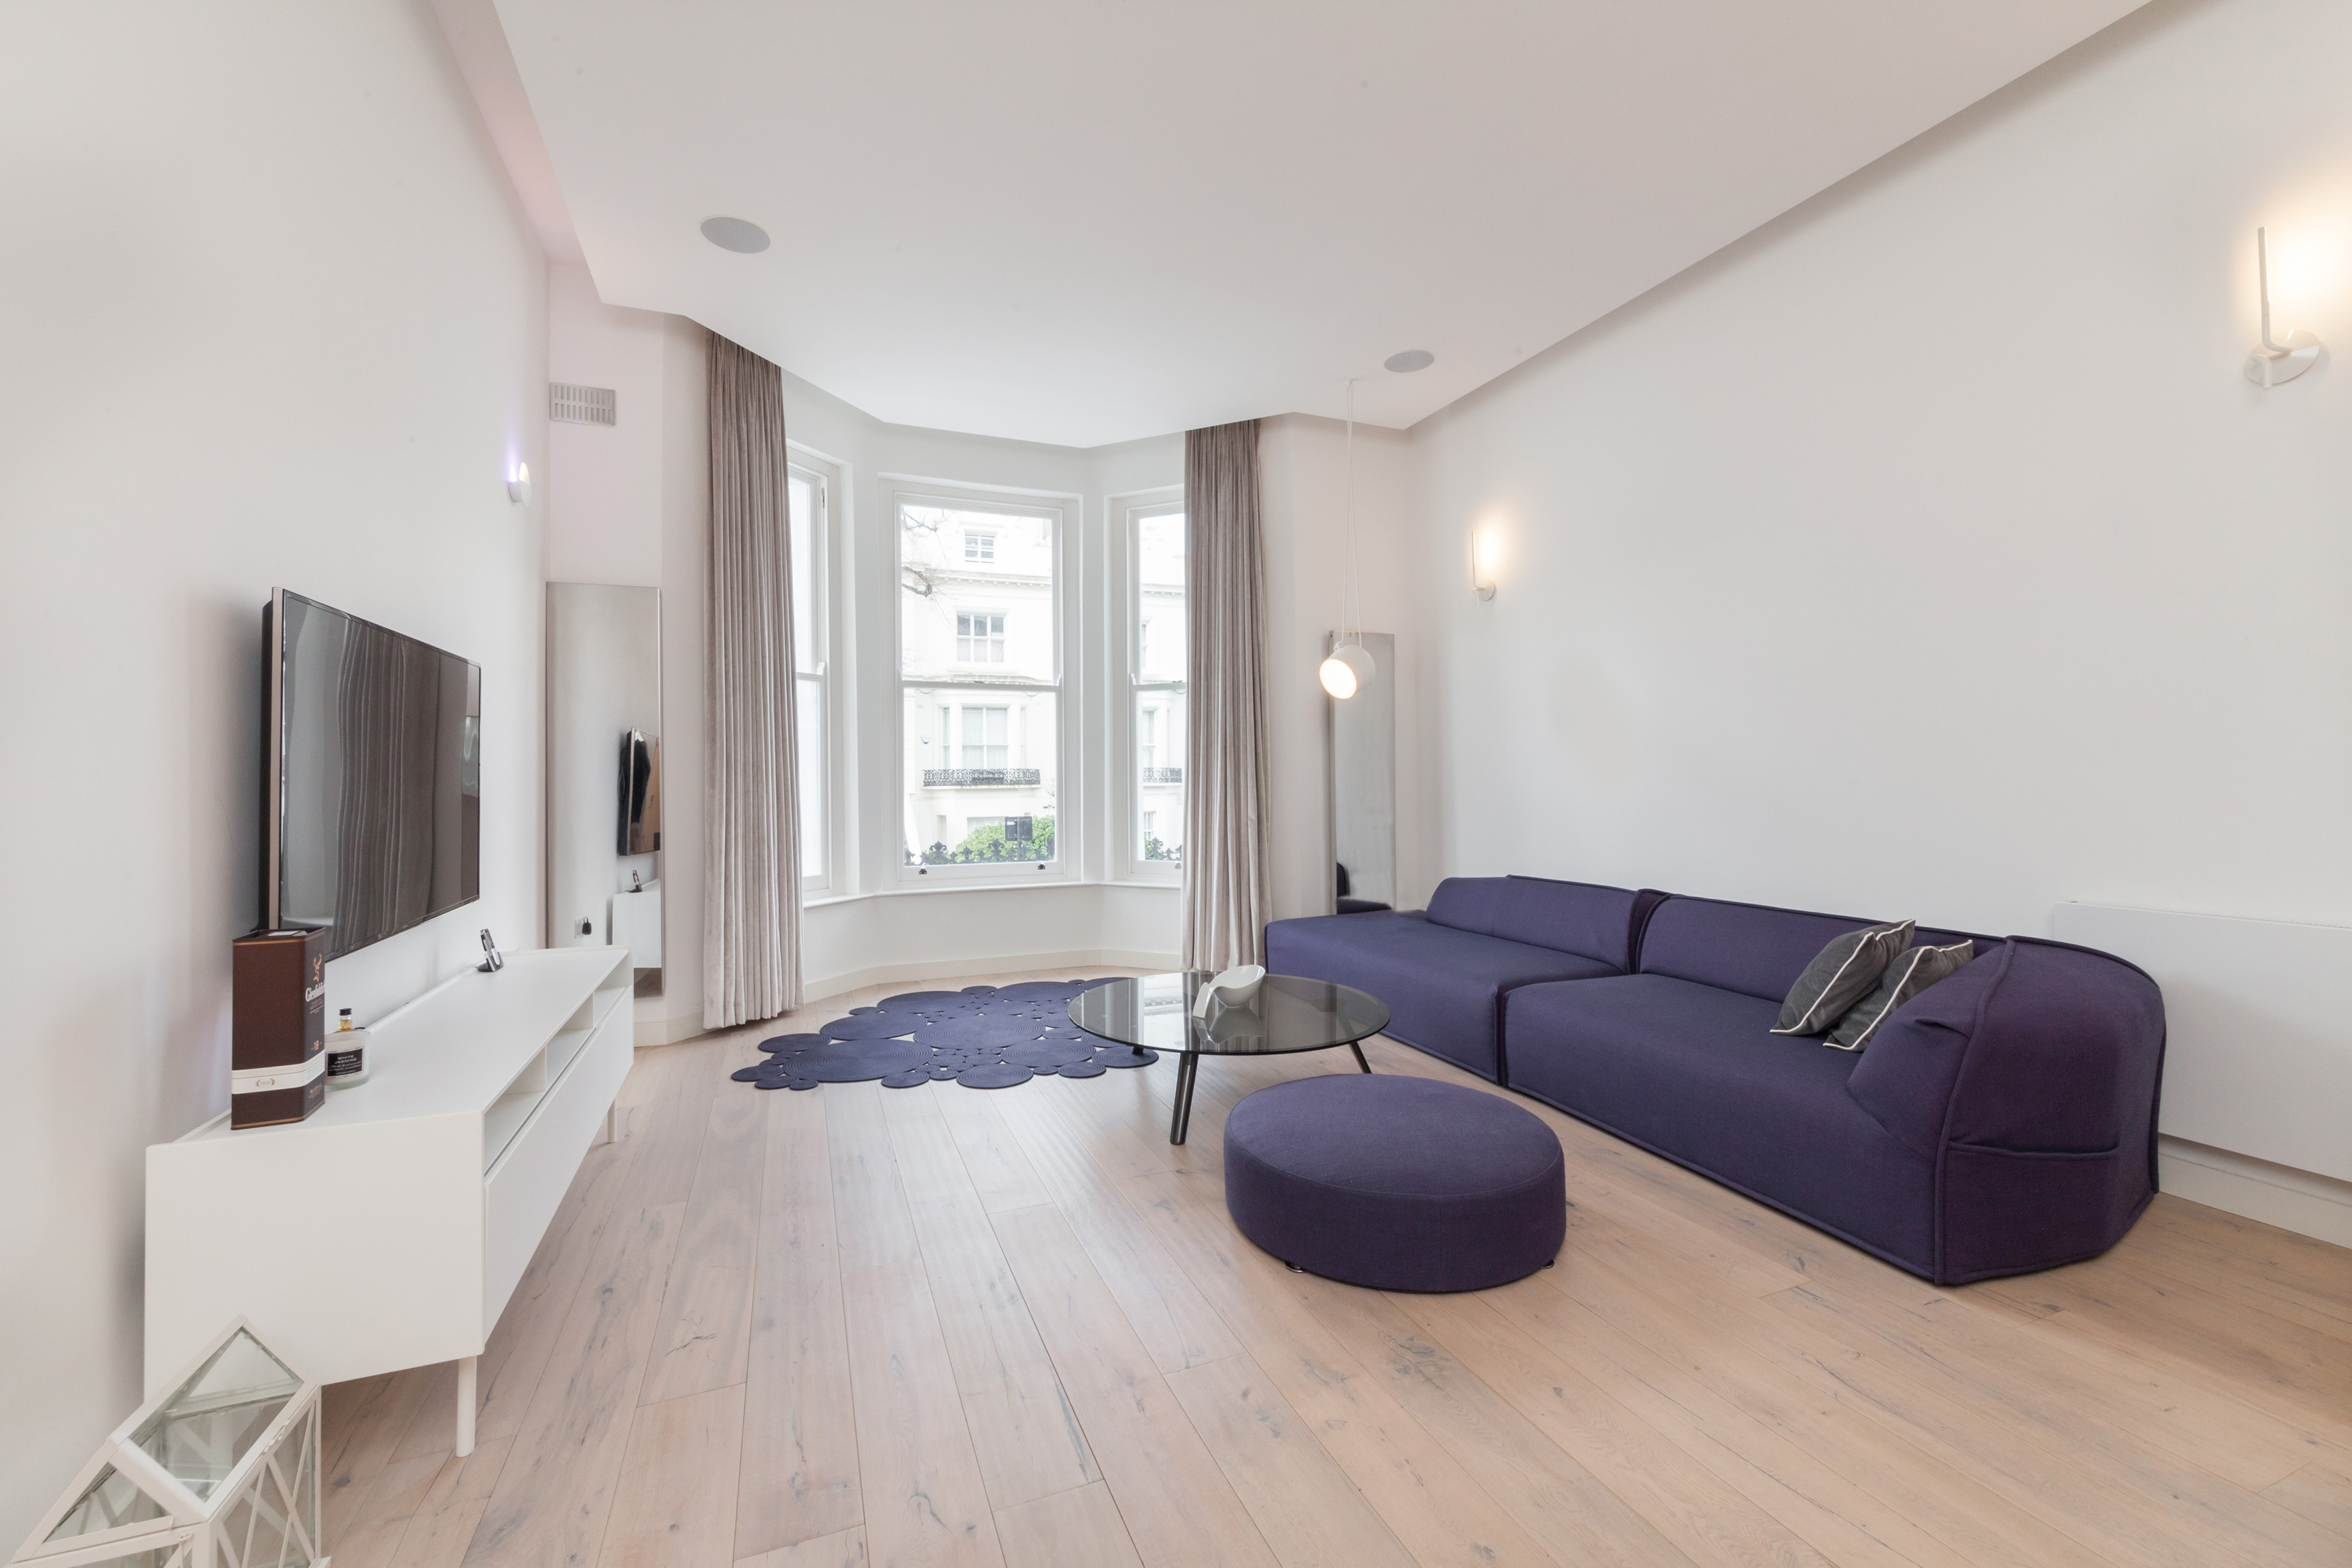 3 Bedroom Flat To Rent In Priory Road West Hampstead NW6 London